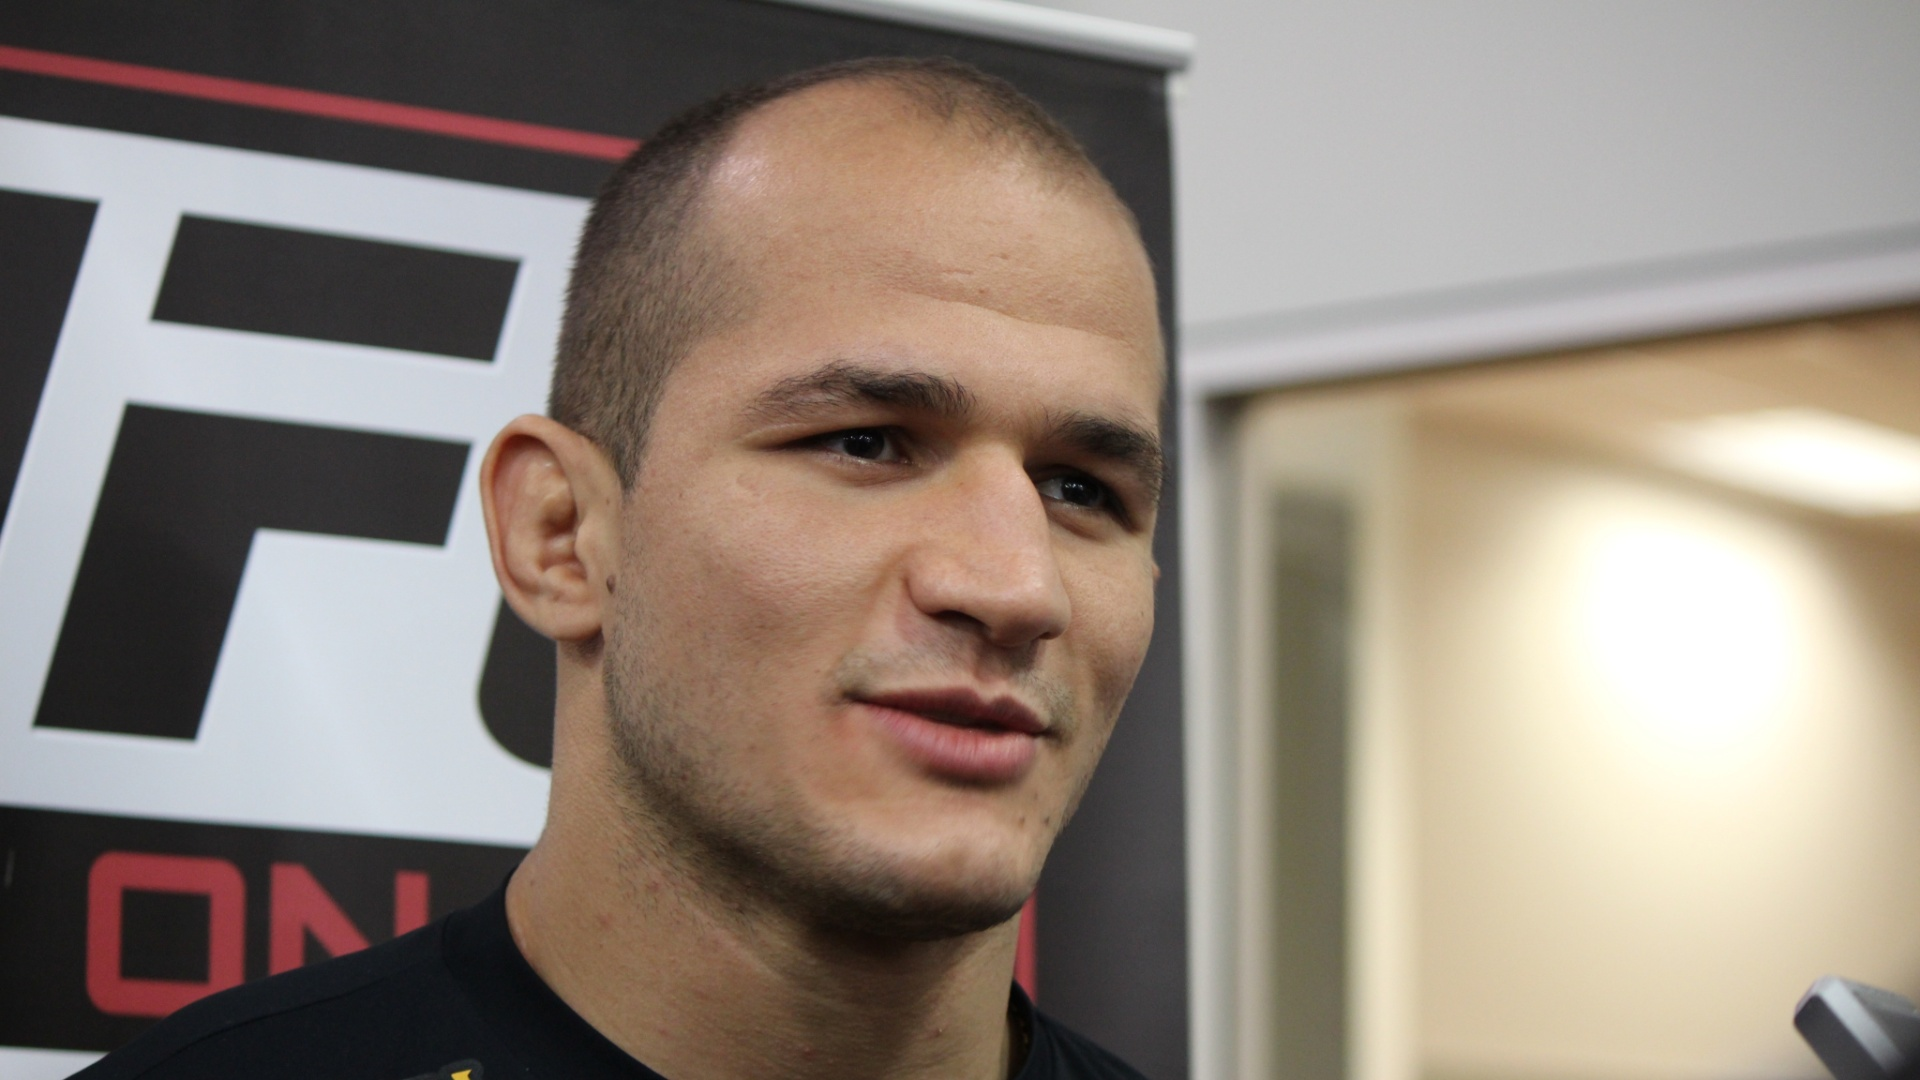 Junior Cigano concede entrevista antes da disputa do cinturão dos pesos pesados do UFC